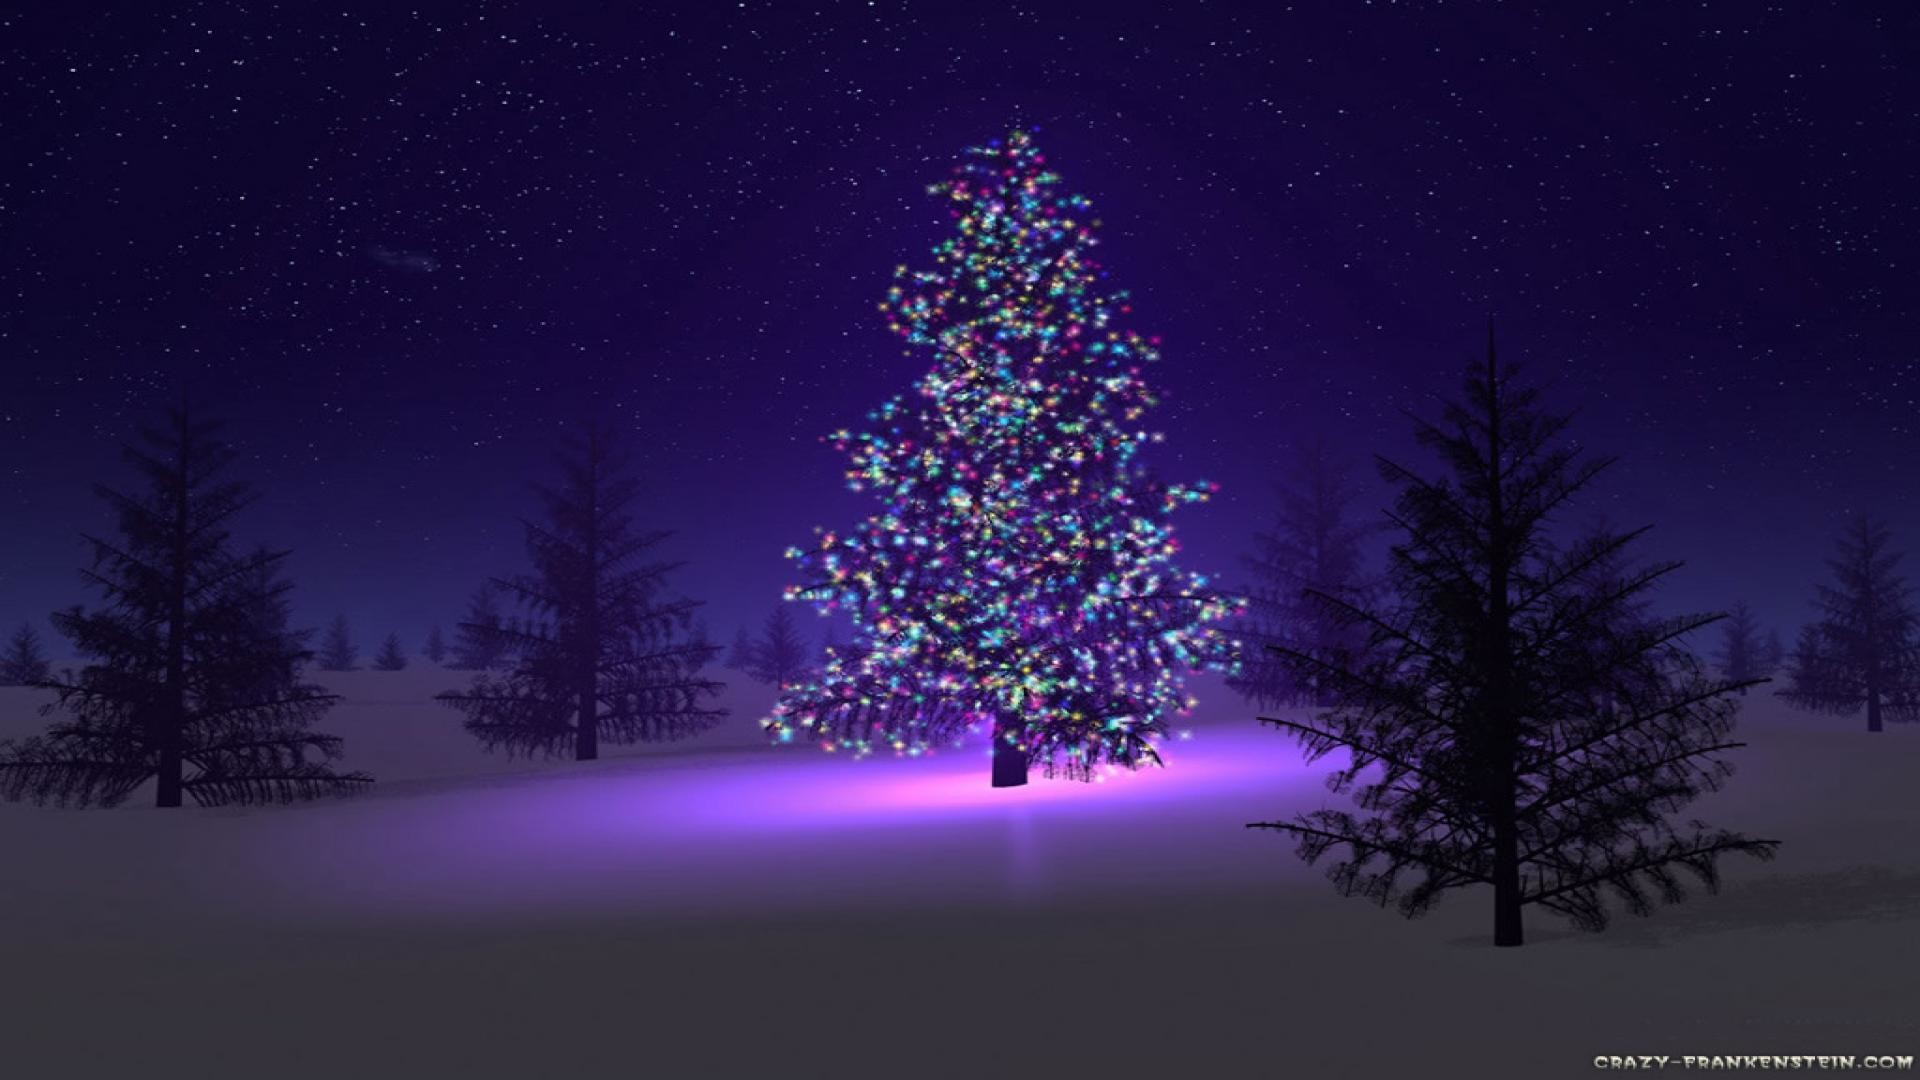 3d Live Wallpaper For Iphone 4s Christmas Wallpapers For Desktop 1920x1080 64 Images